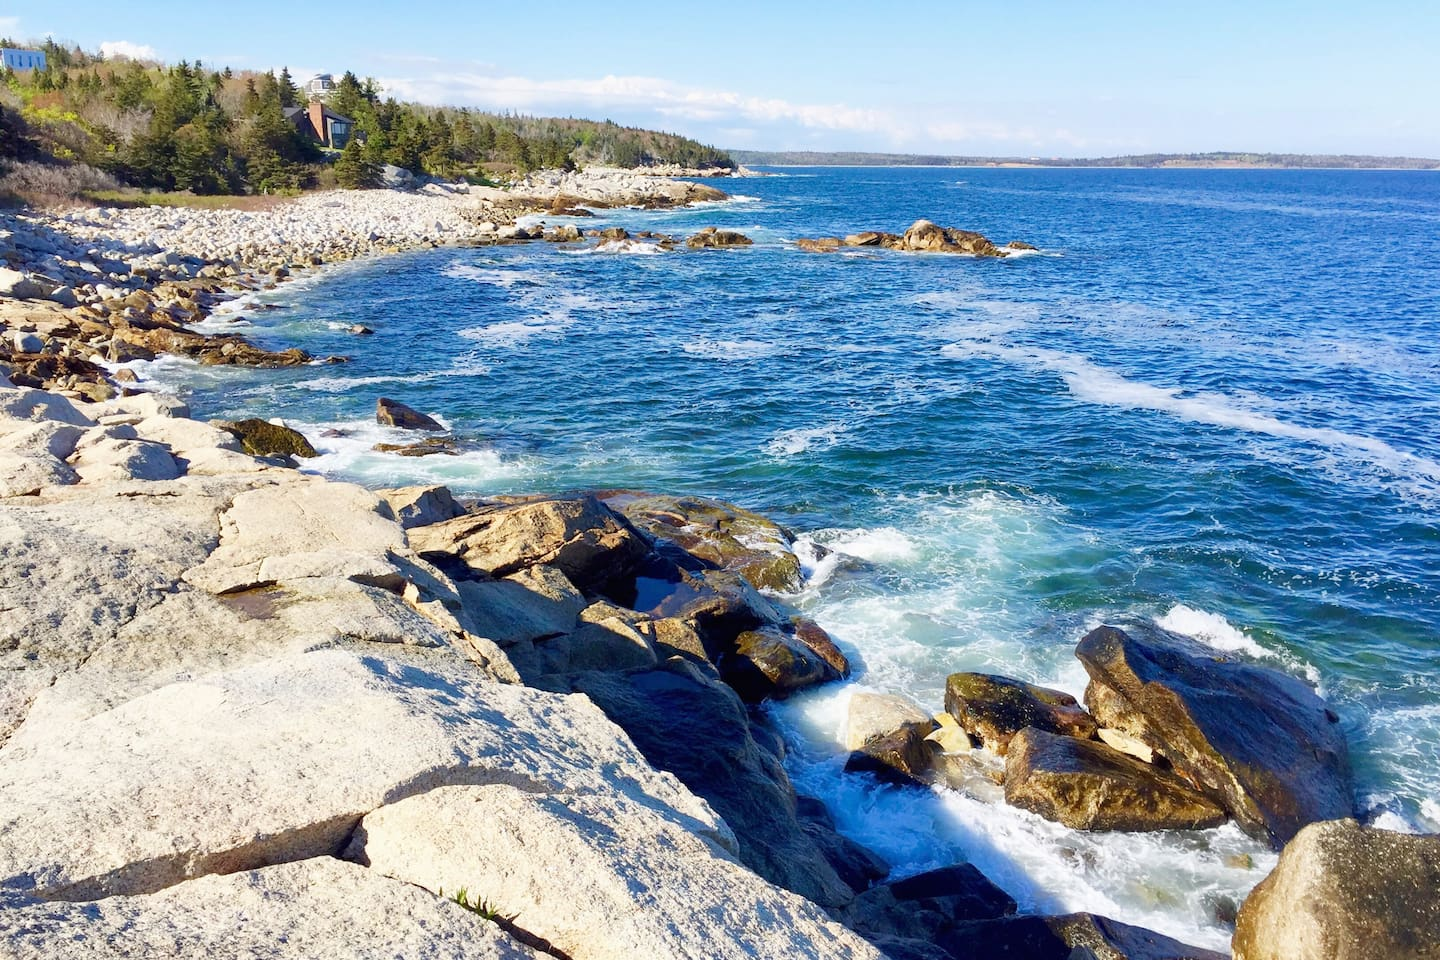 Relax to an amazing view of the ocean and hiking trails